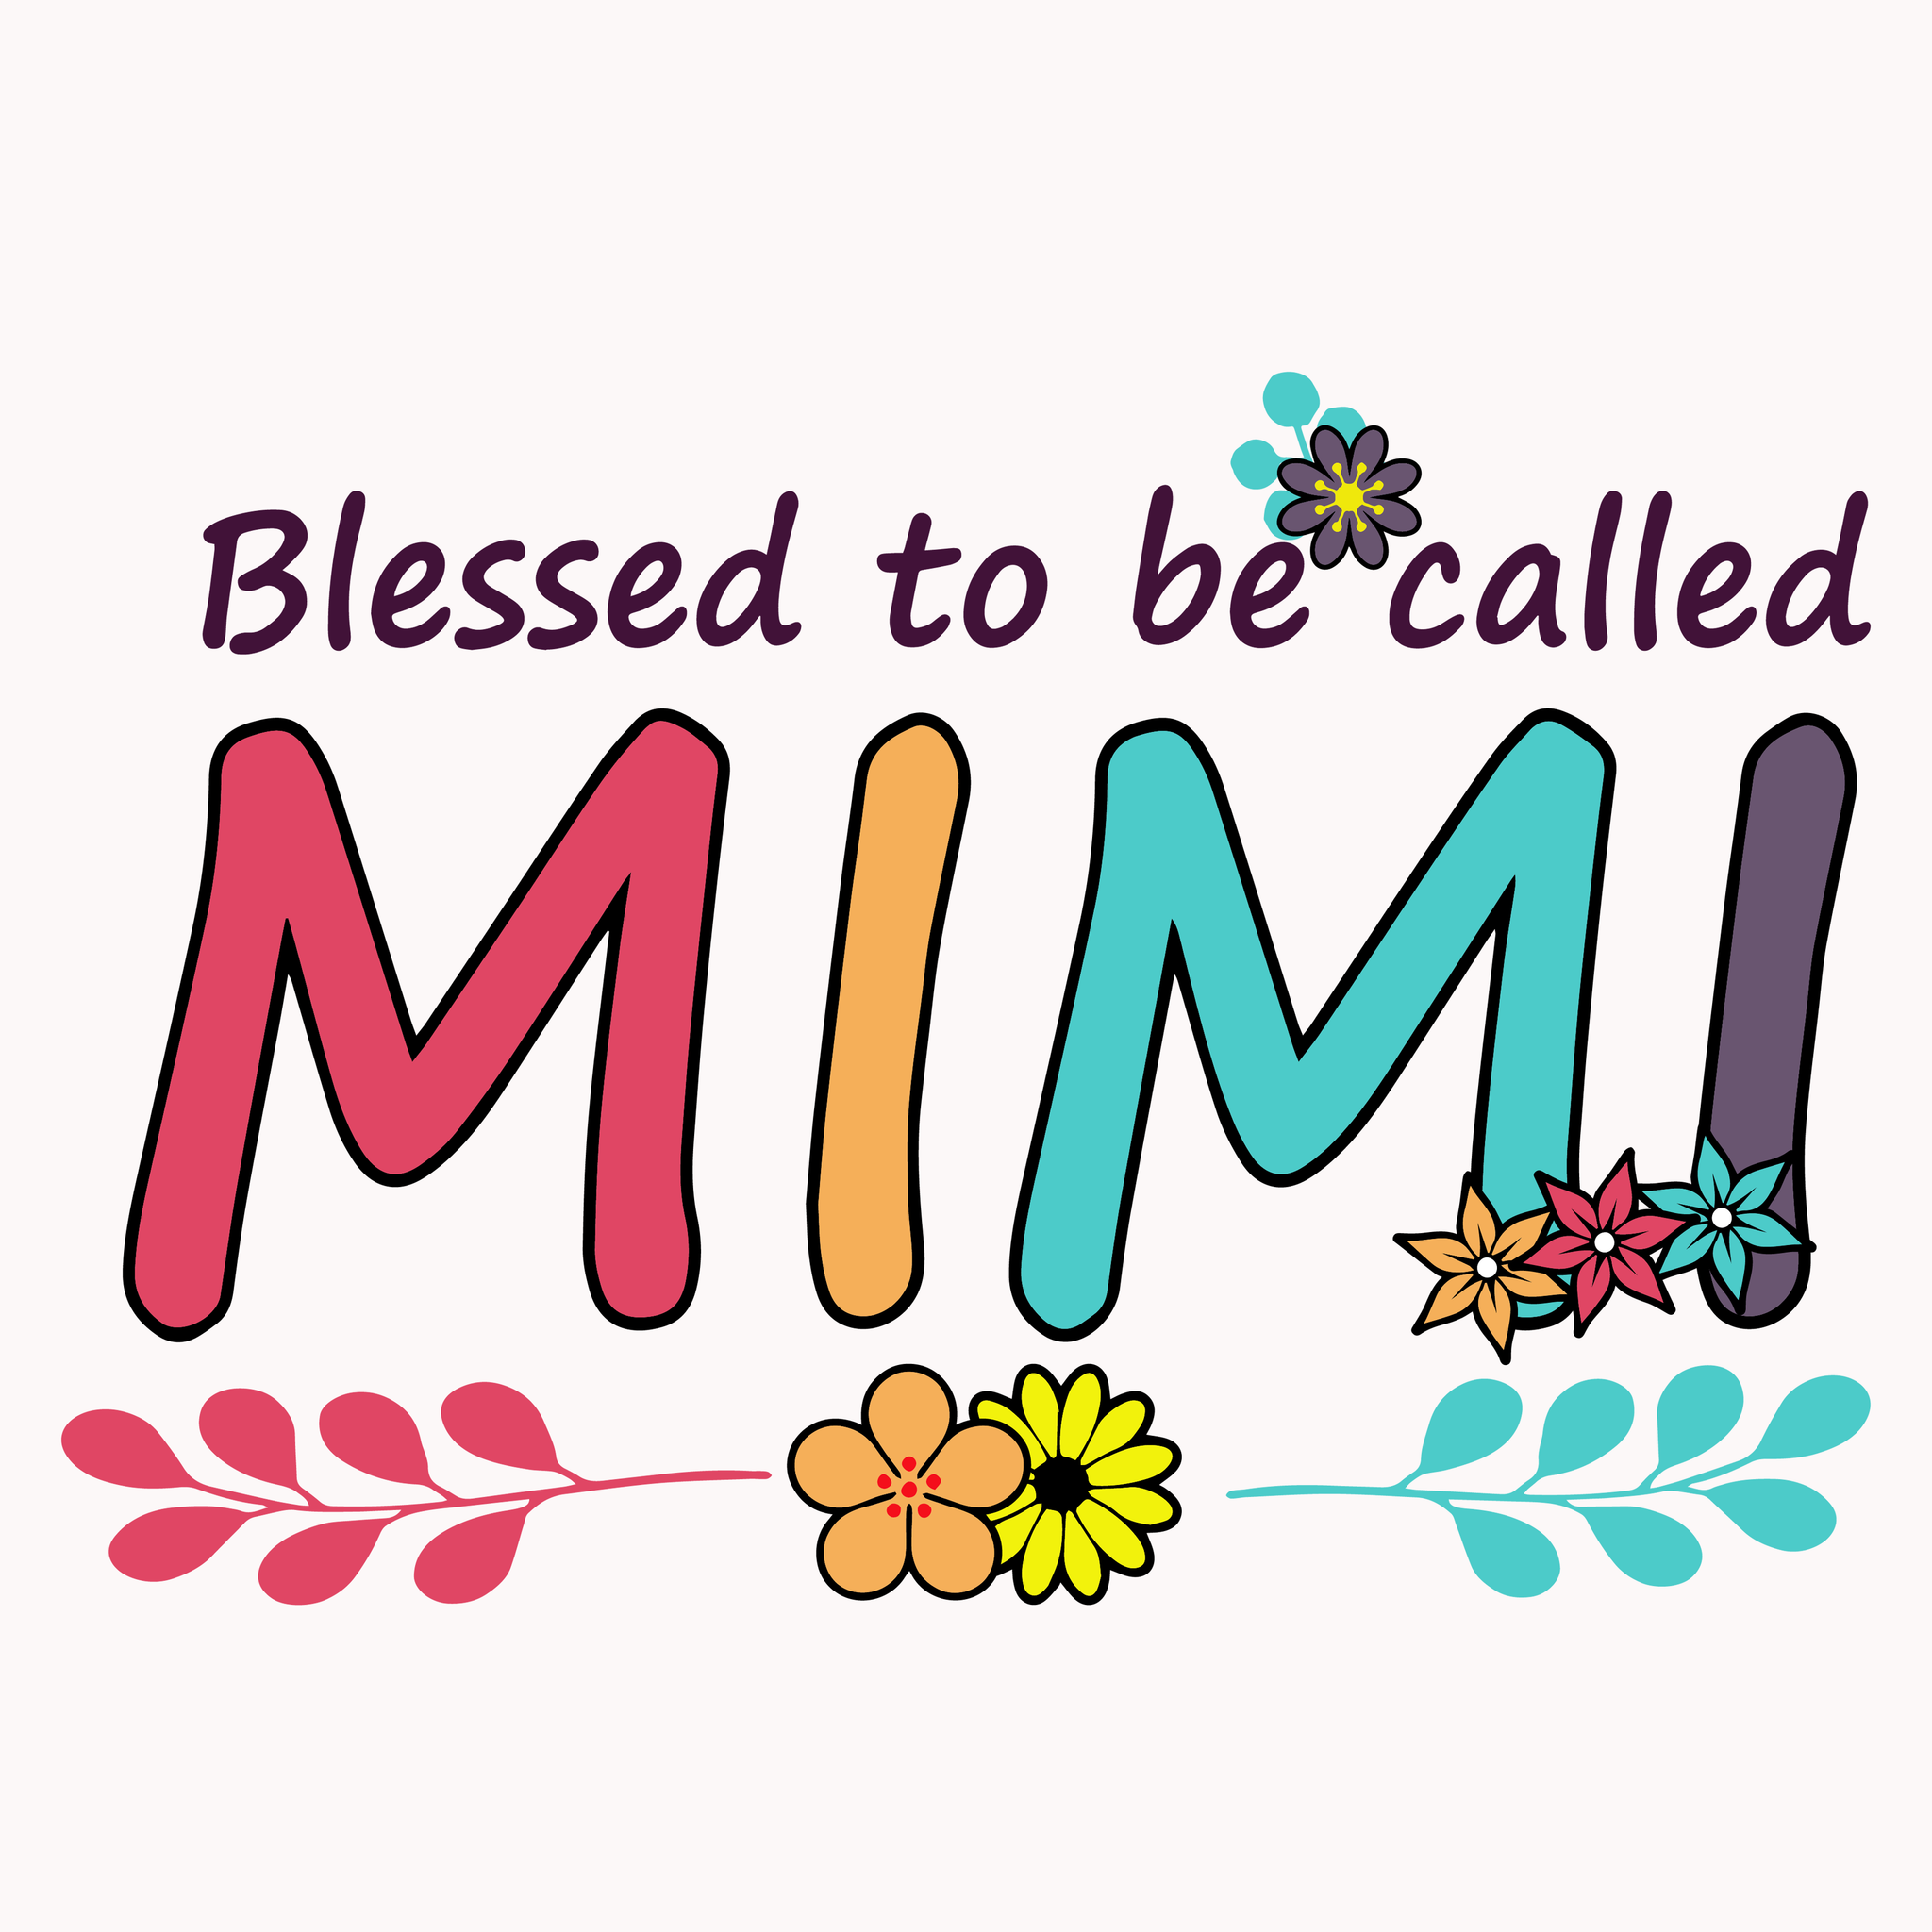 Blessed to be called Mimi svg, Blessed to be called Mimi, Blessed to be called Mimi png, Mimi svg, funny quotes svg